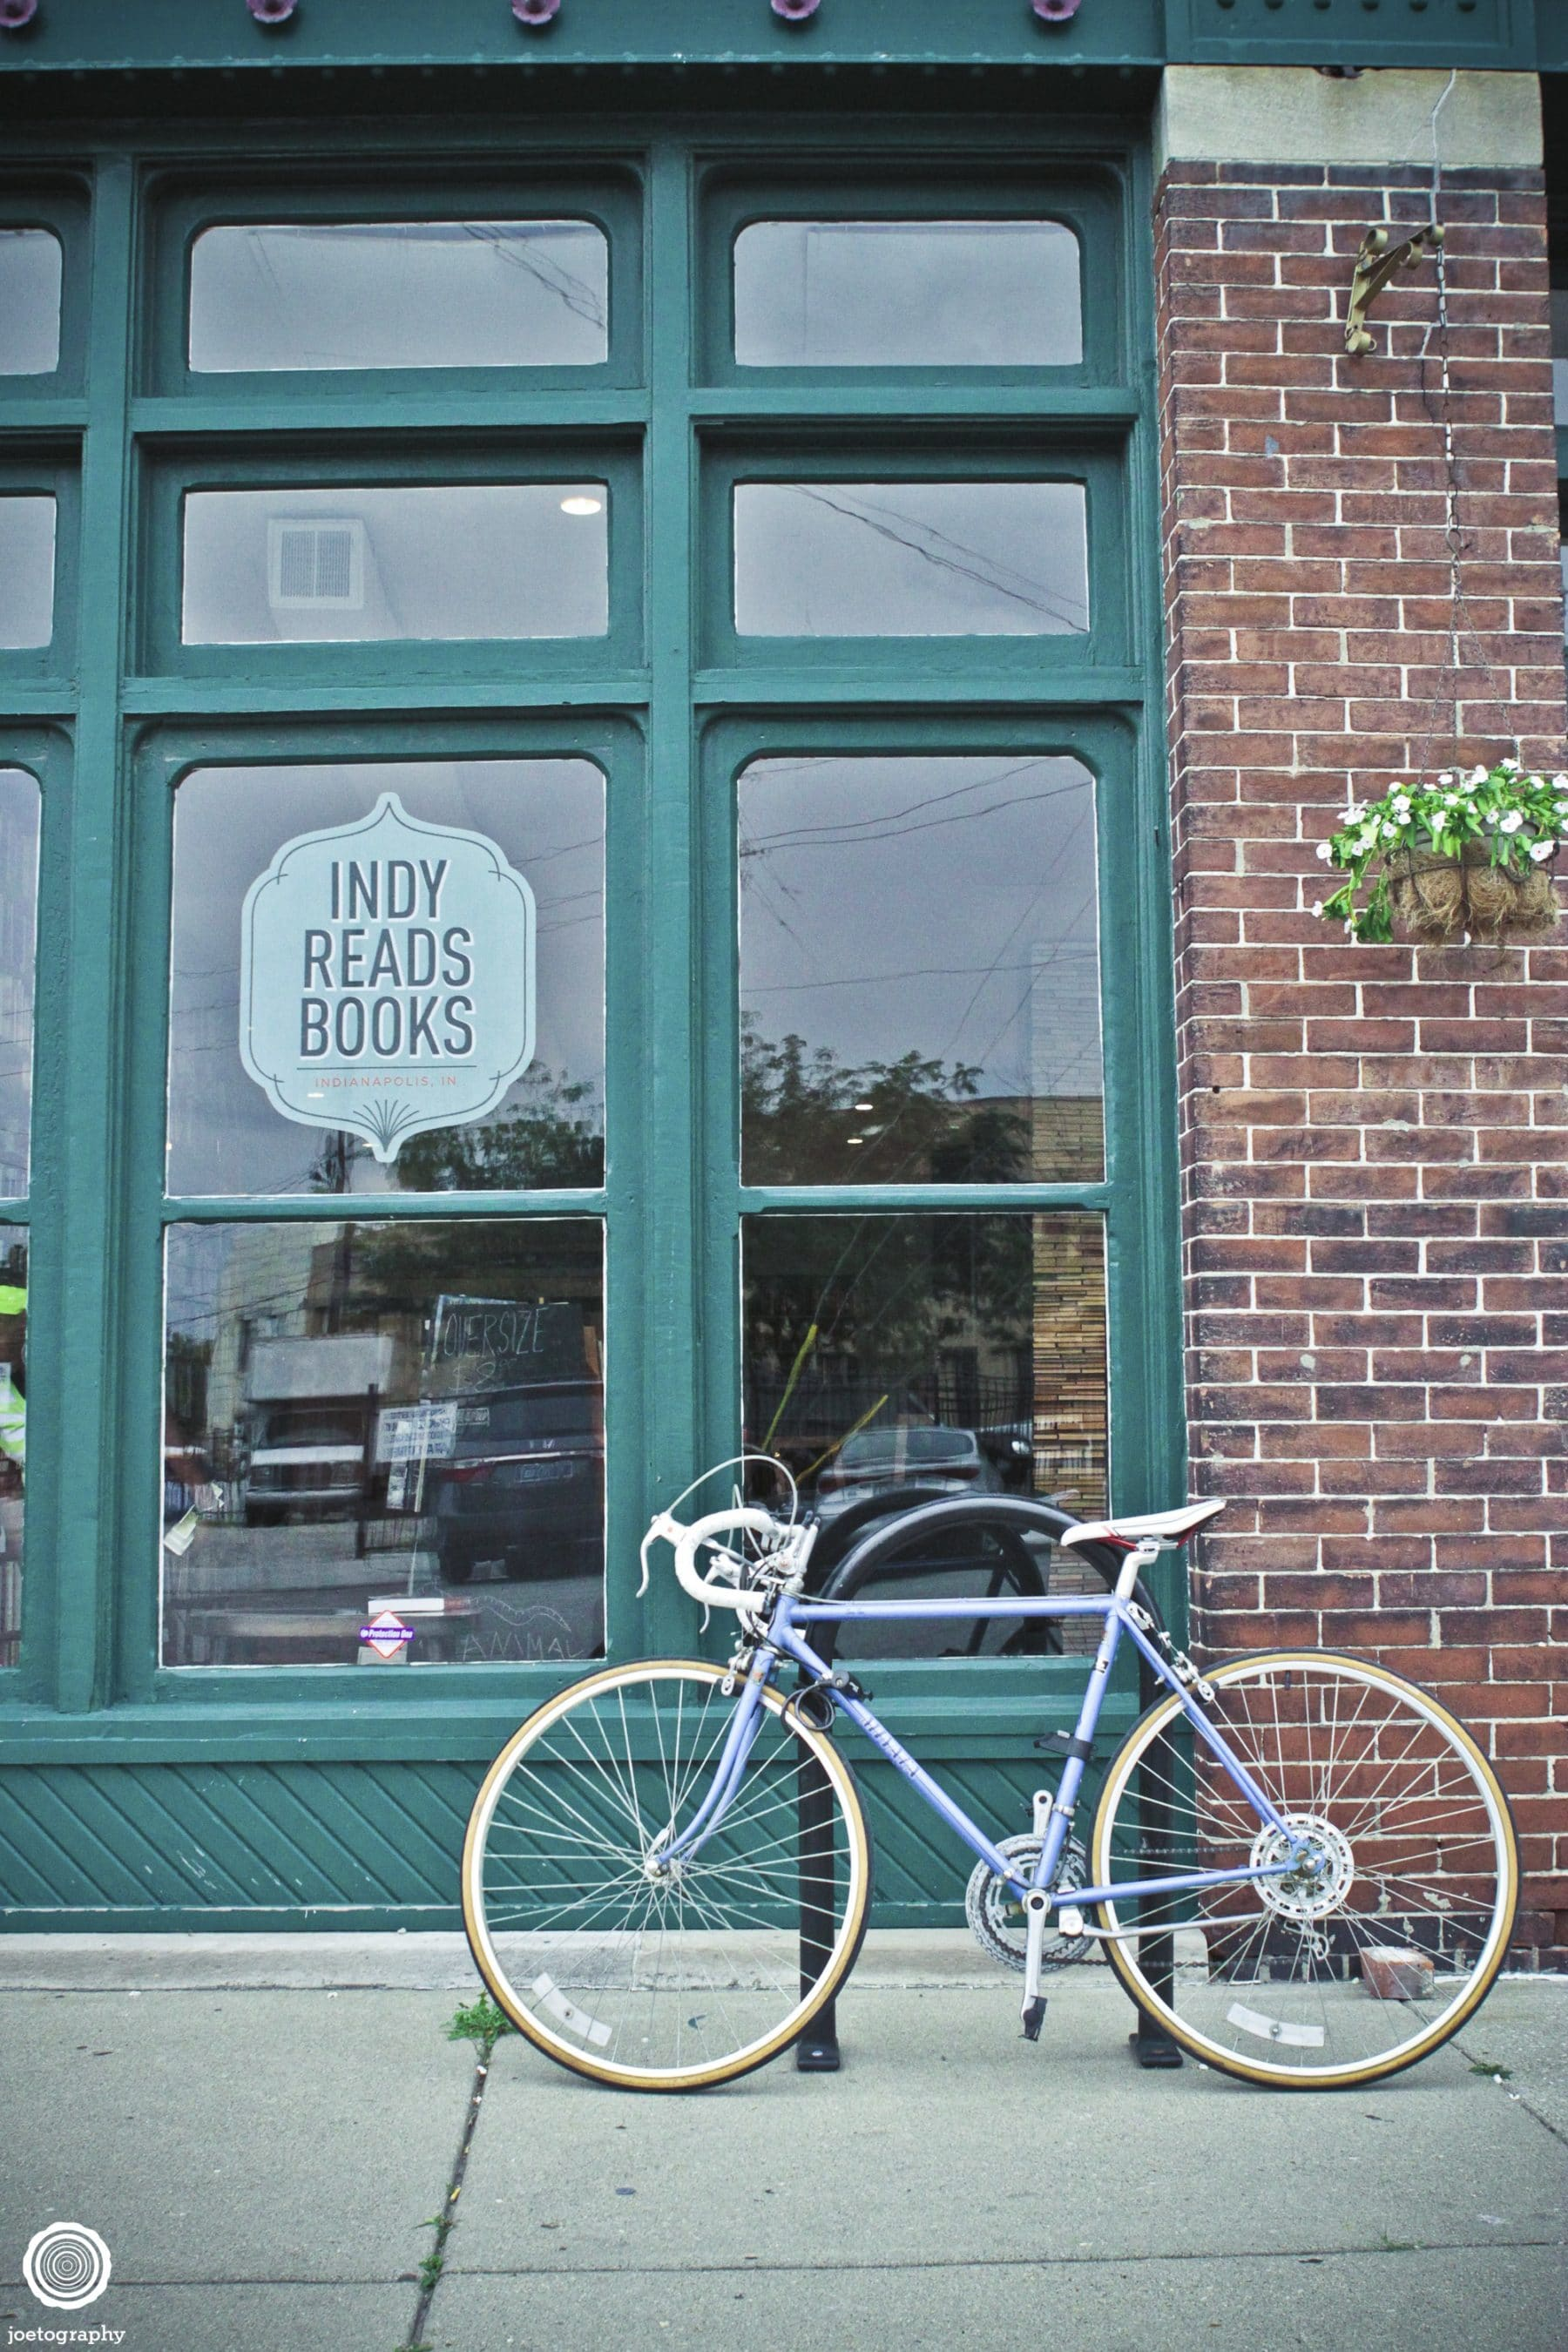 Indy-Reads-Books-Making-Indianapolis-Literate-Photos-15